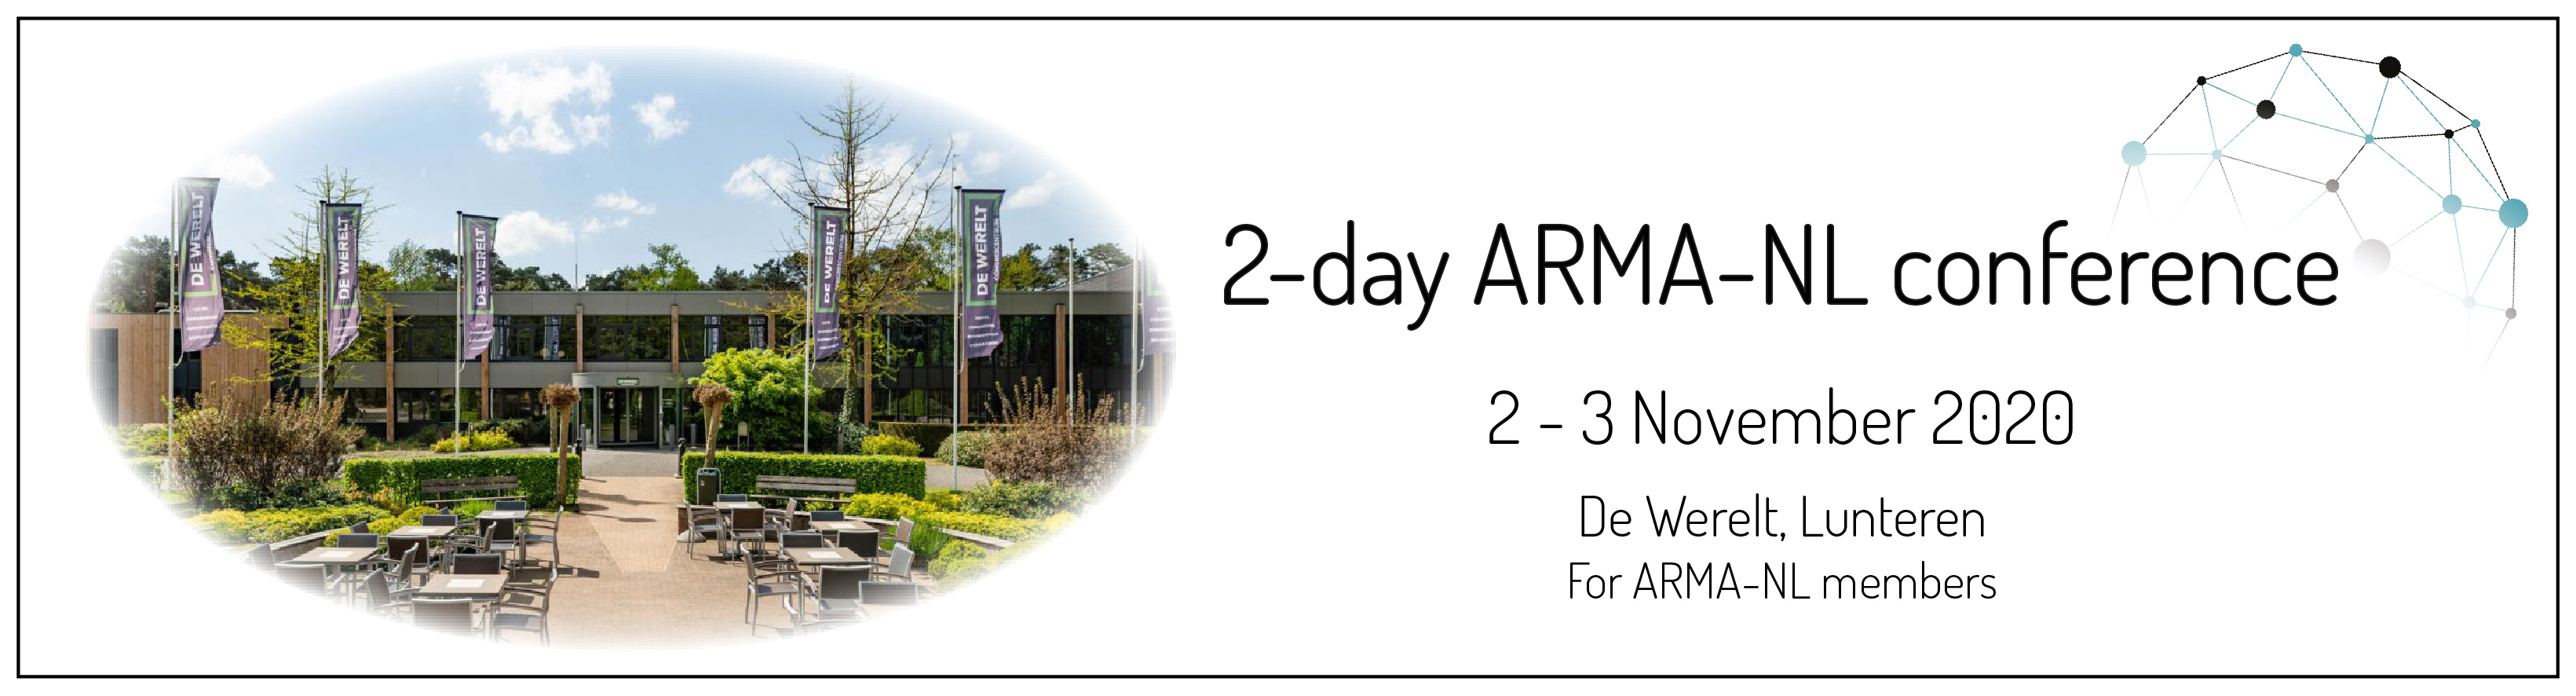 ARMA NL meeting 2-4 November, location de Werelt, Lunteren